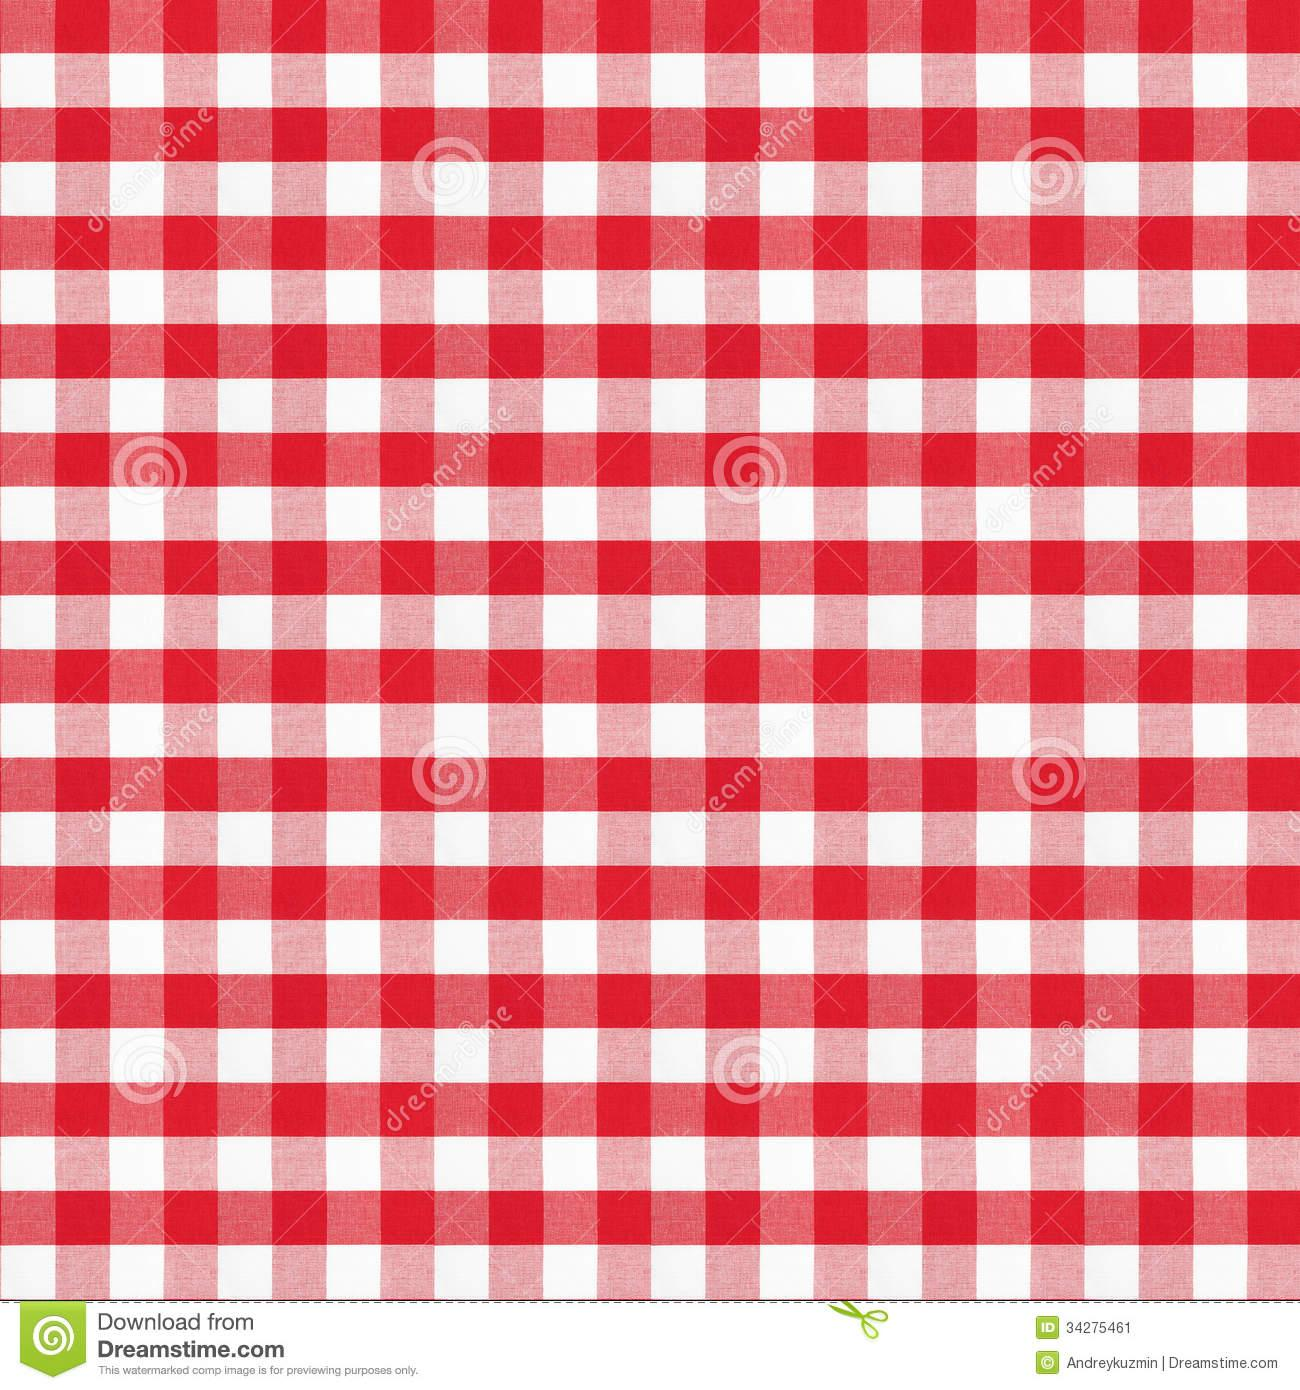 Red checkered tablecloth wine clipart image royalty free download Picnic Tablecloth Clipart | Free download best Picnic ... image royalty free download